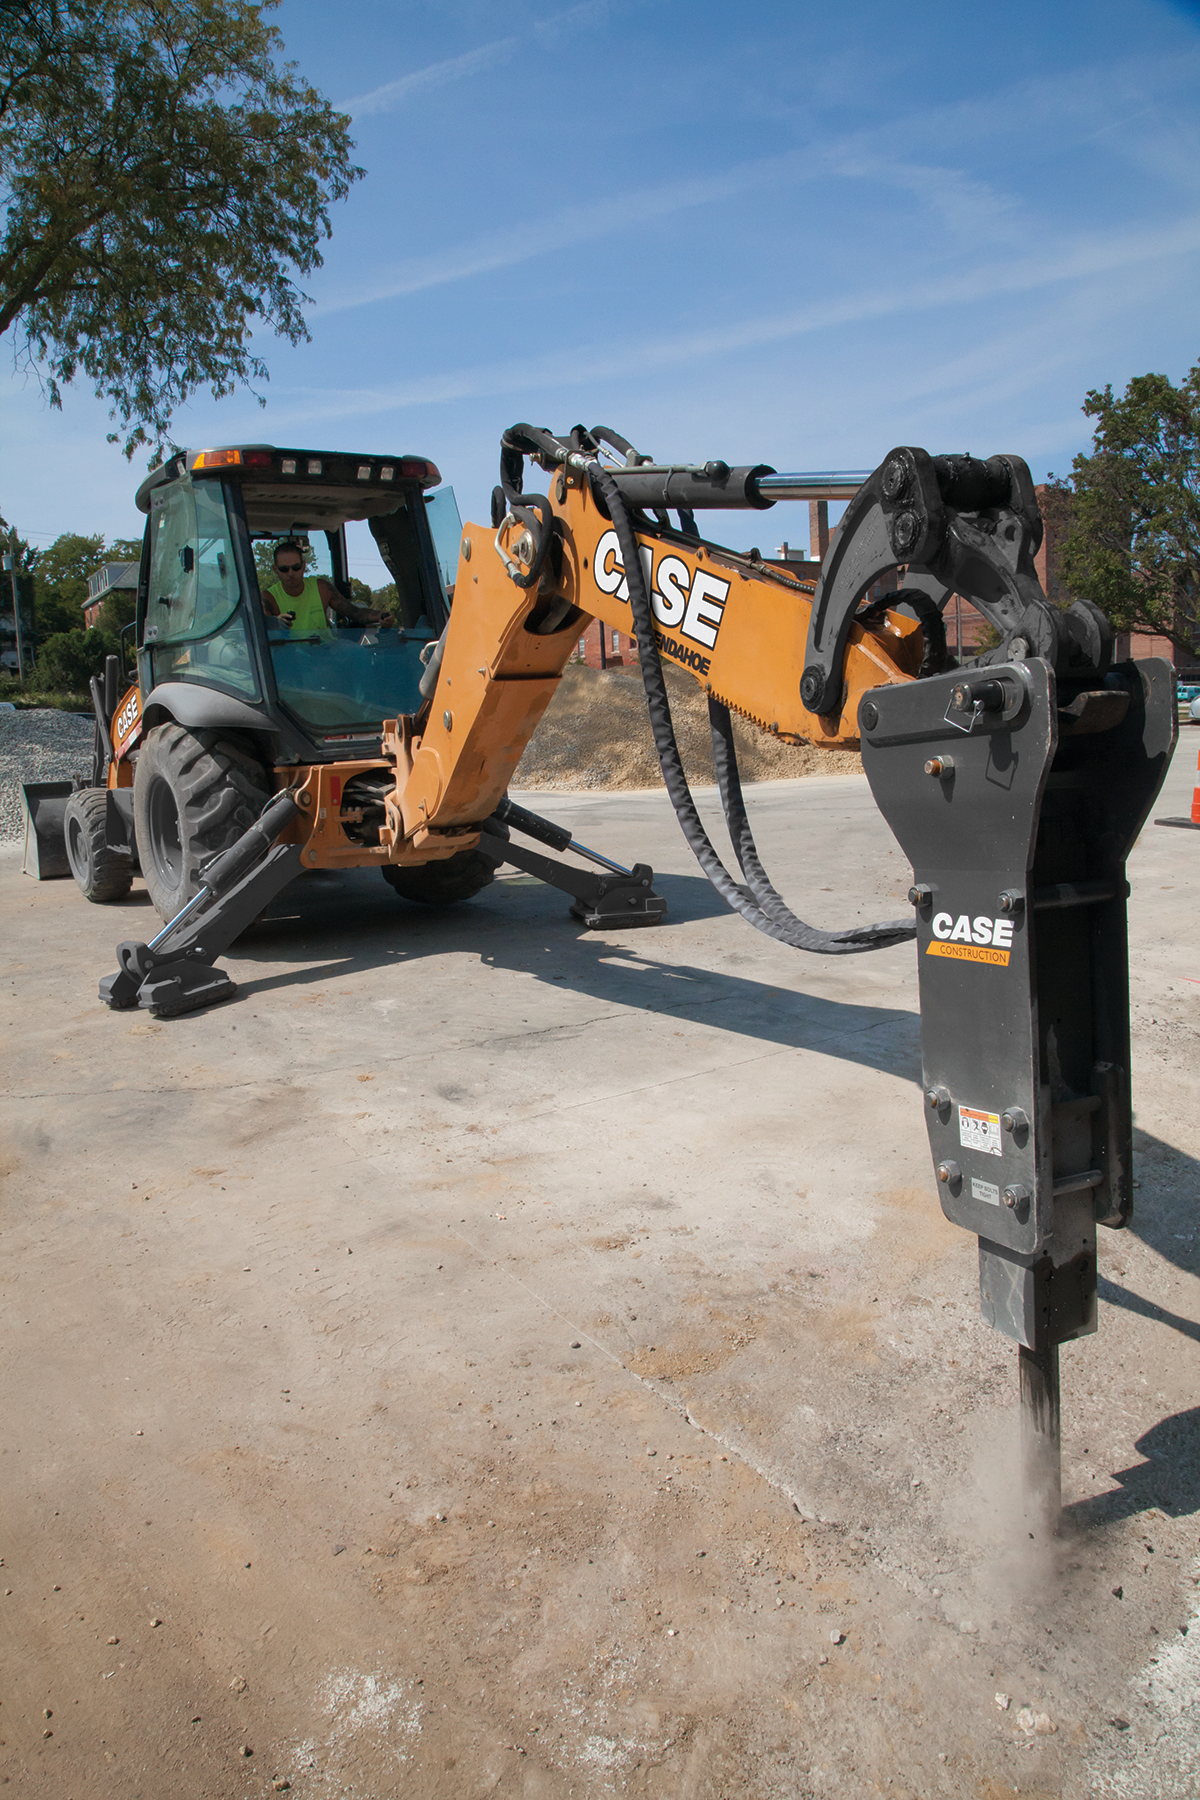 Case backhoe with hydraulic hammer